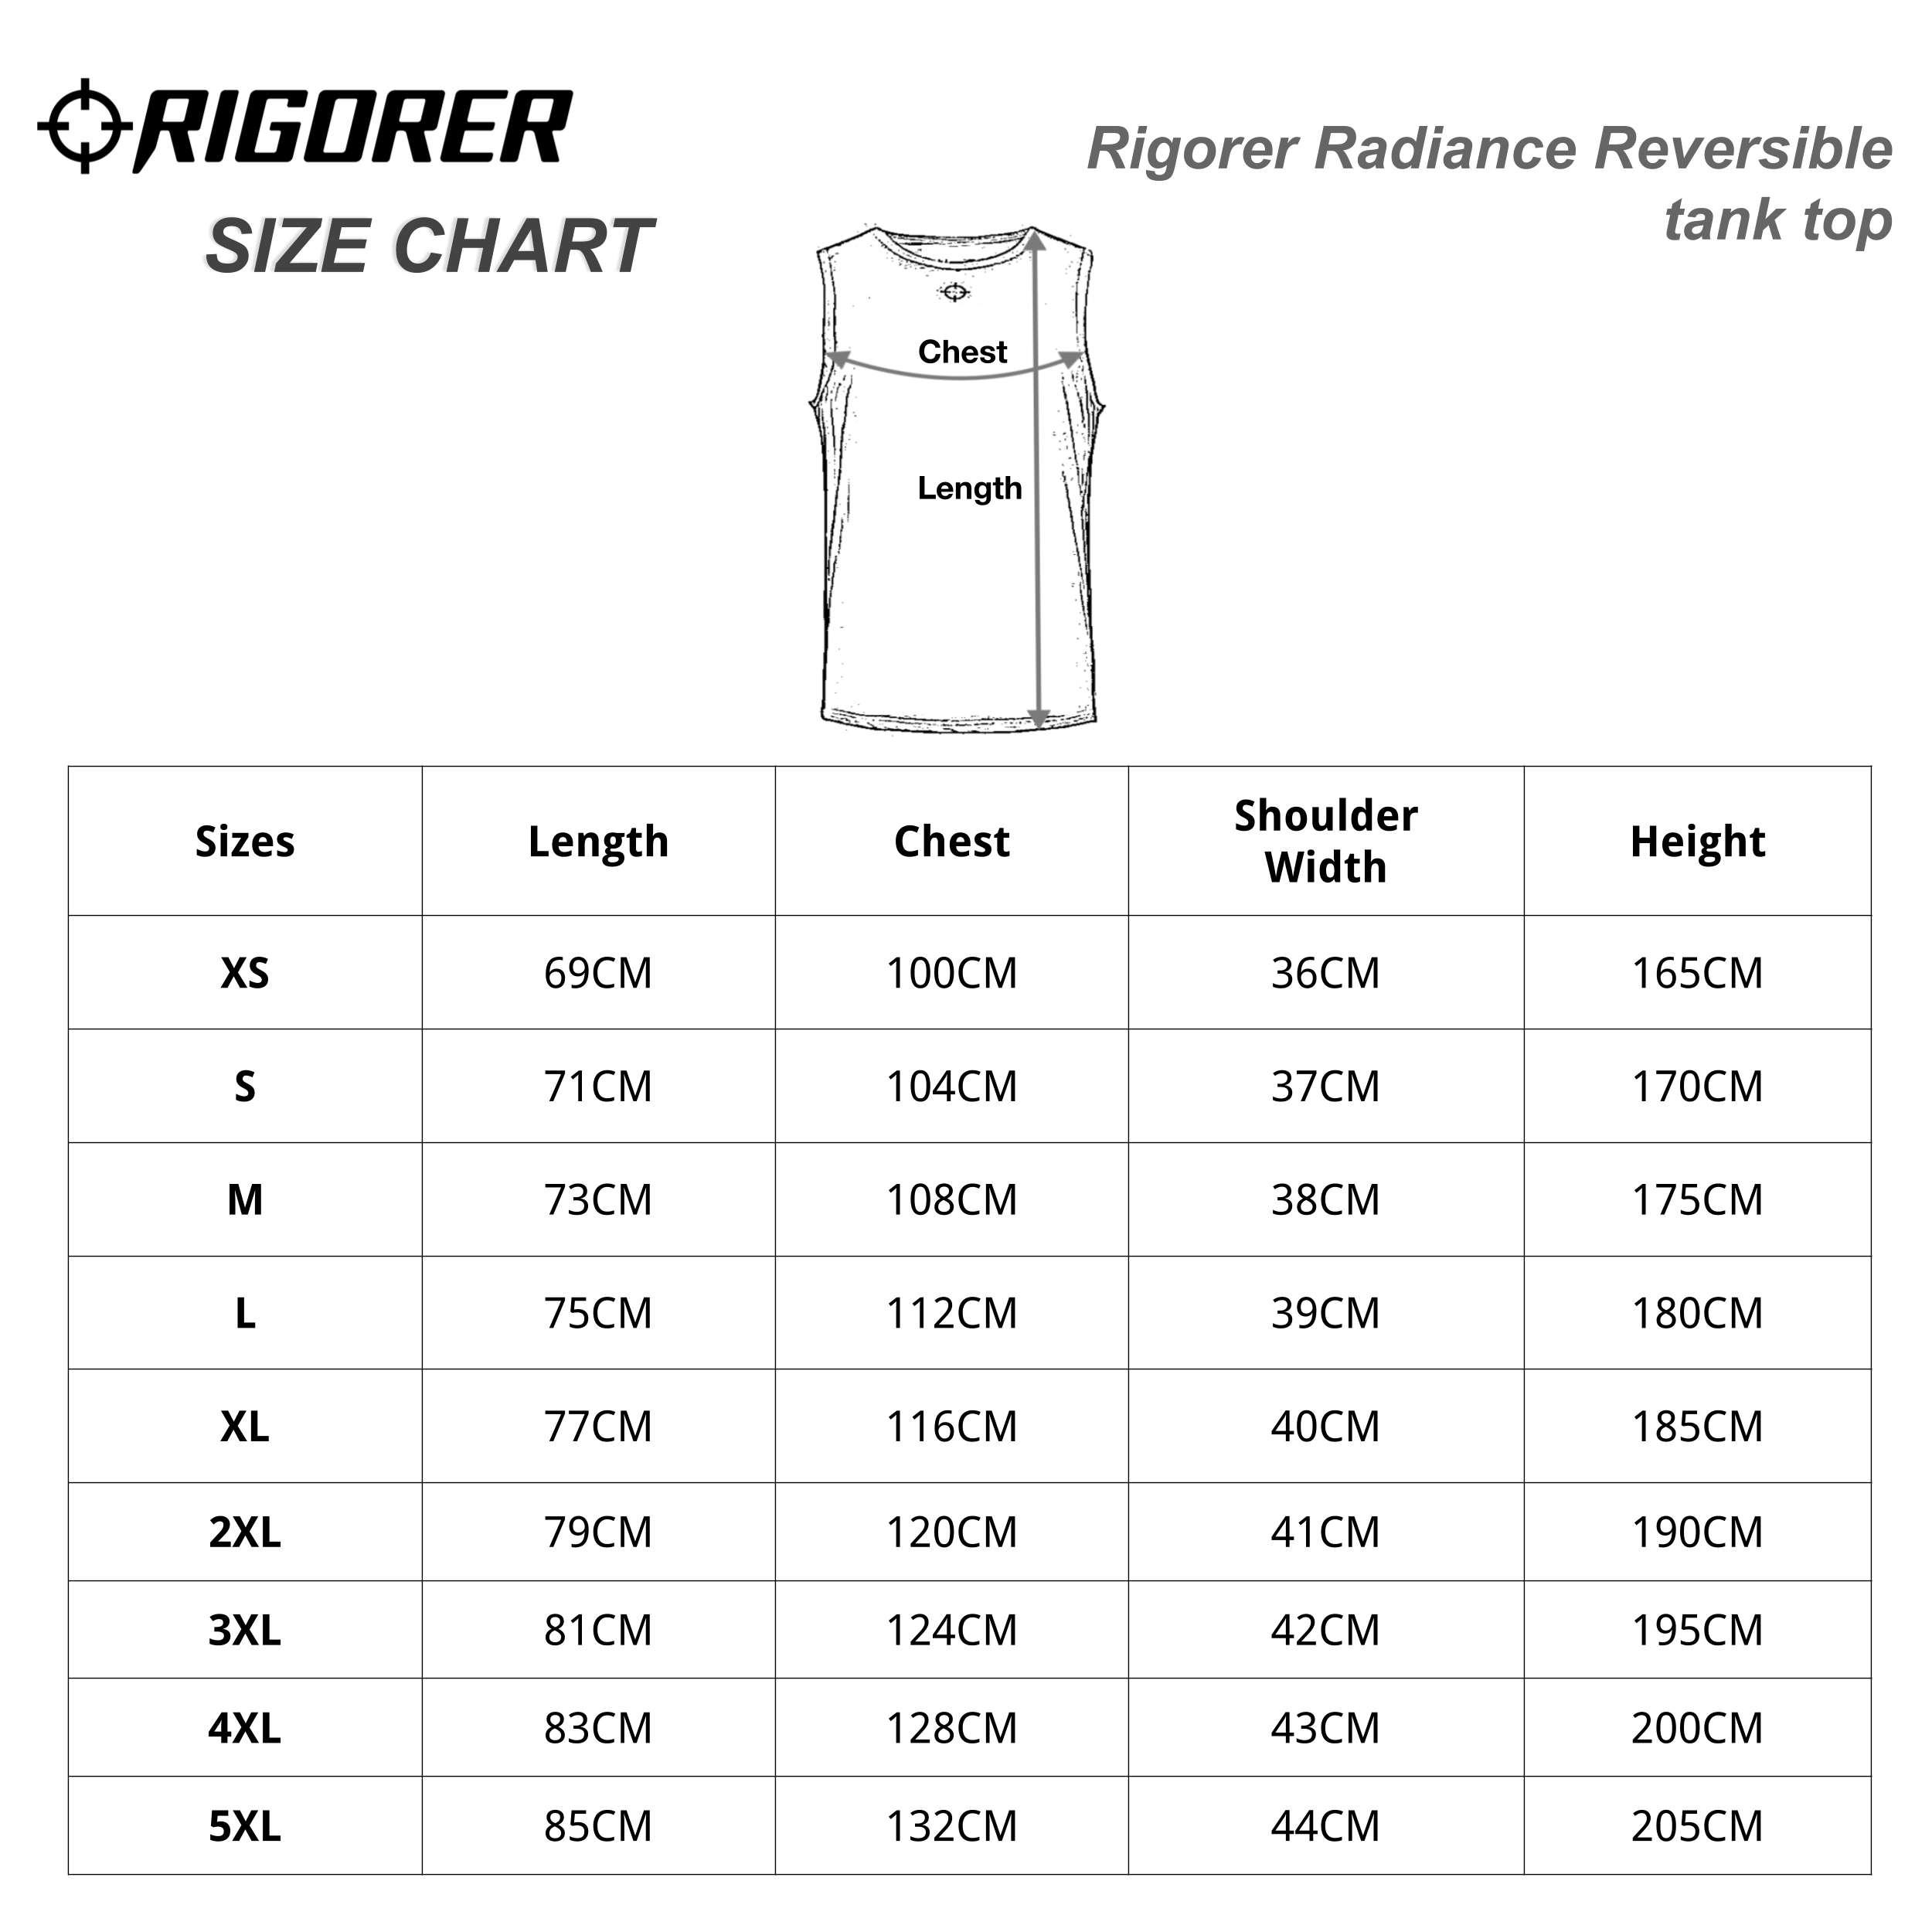 Rigorer Radiance Reversible tank top Sizing Chart